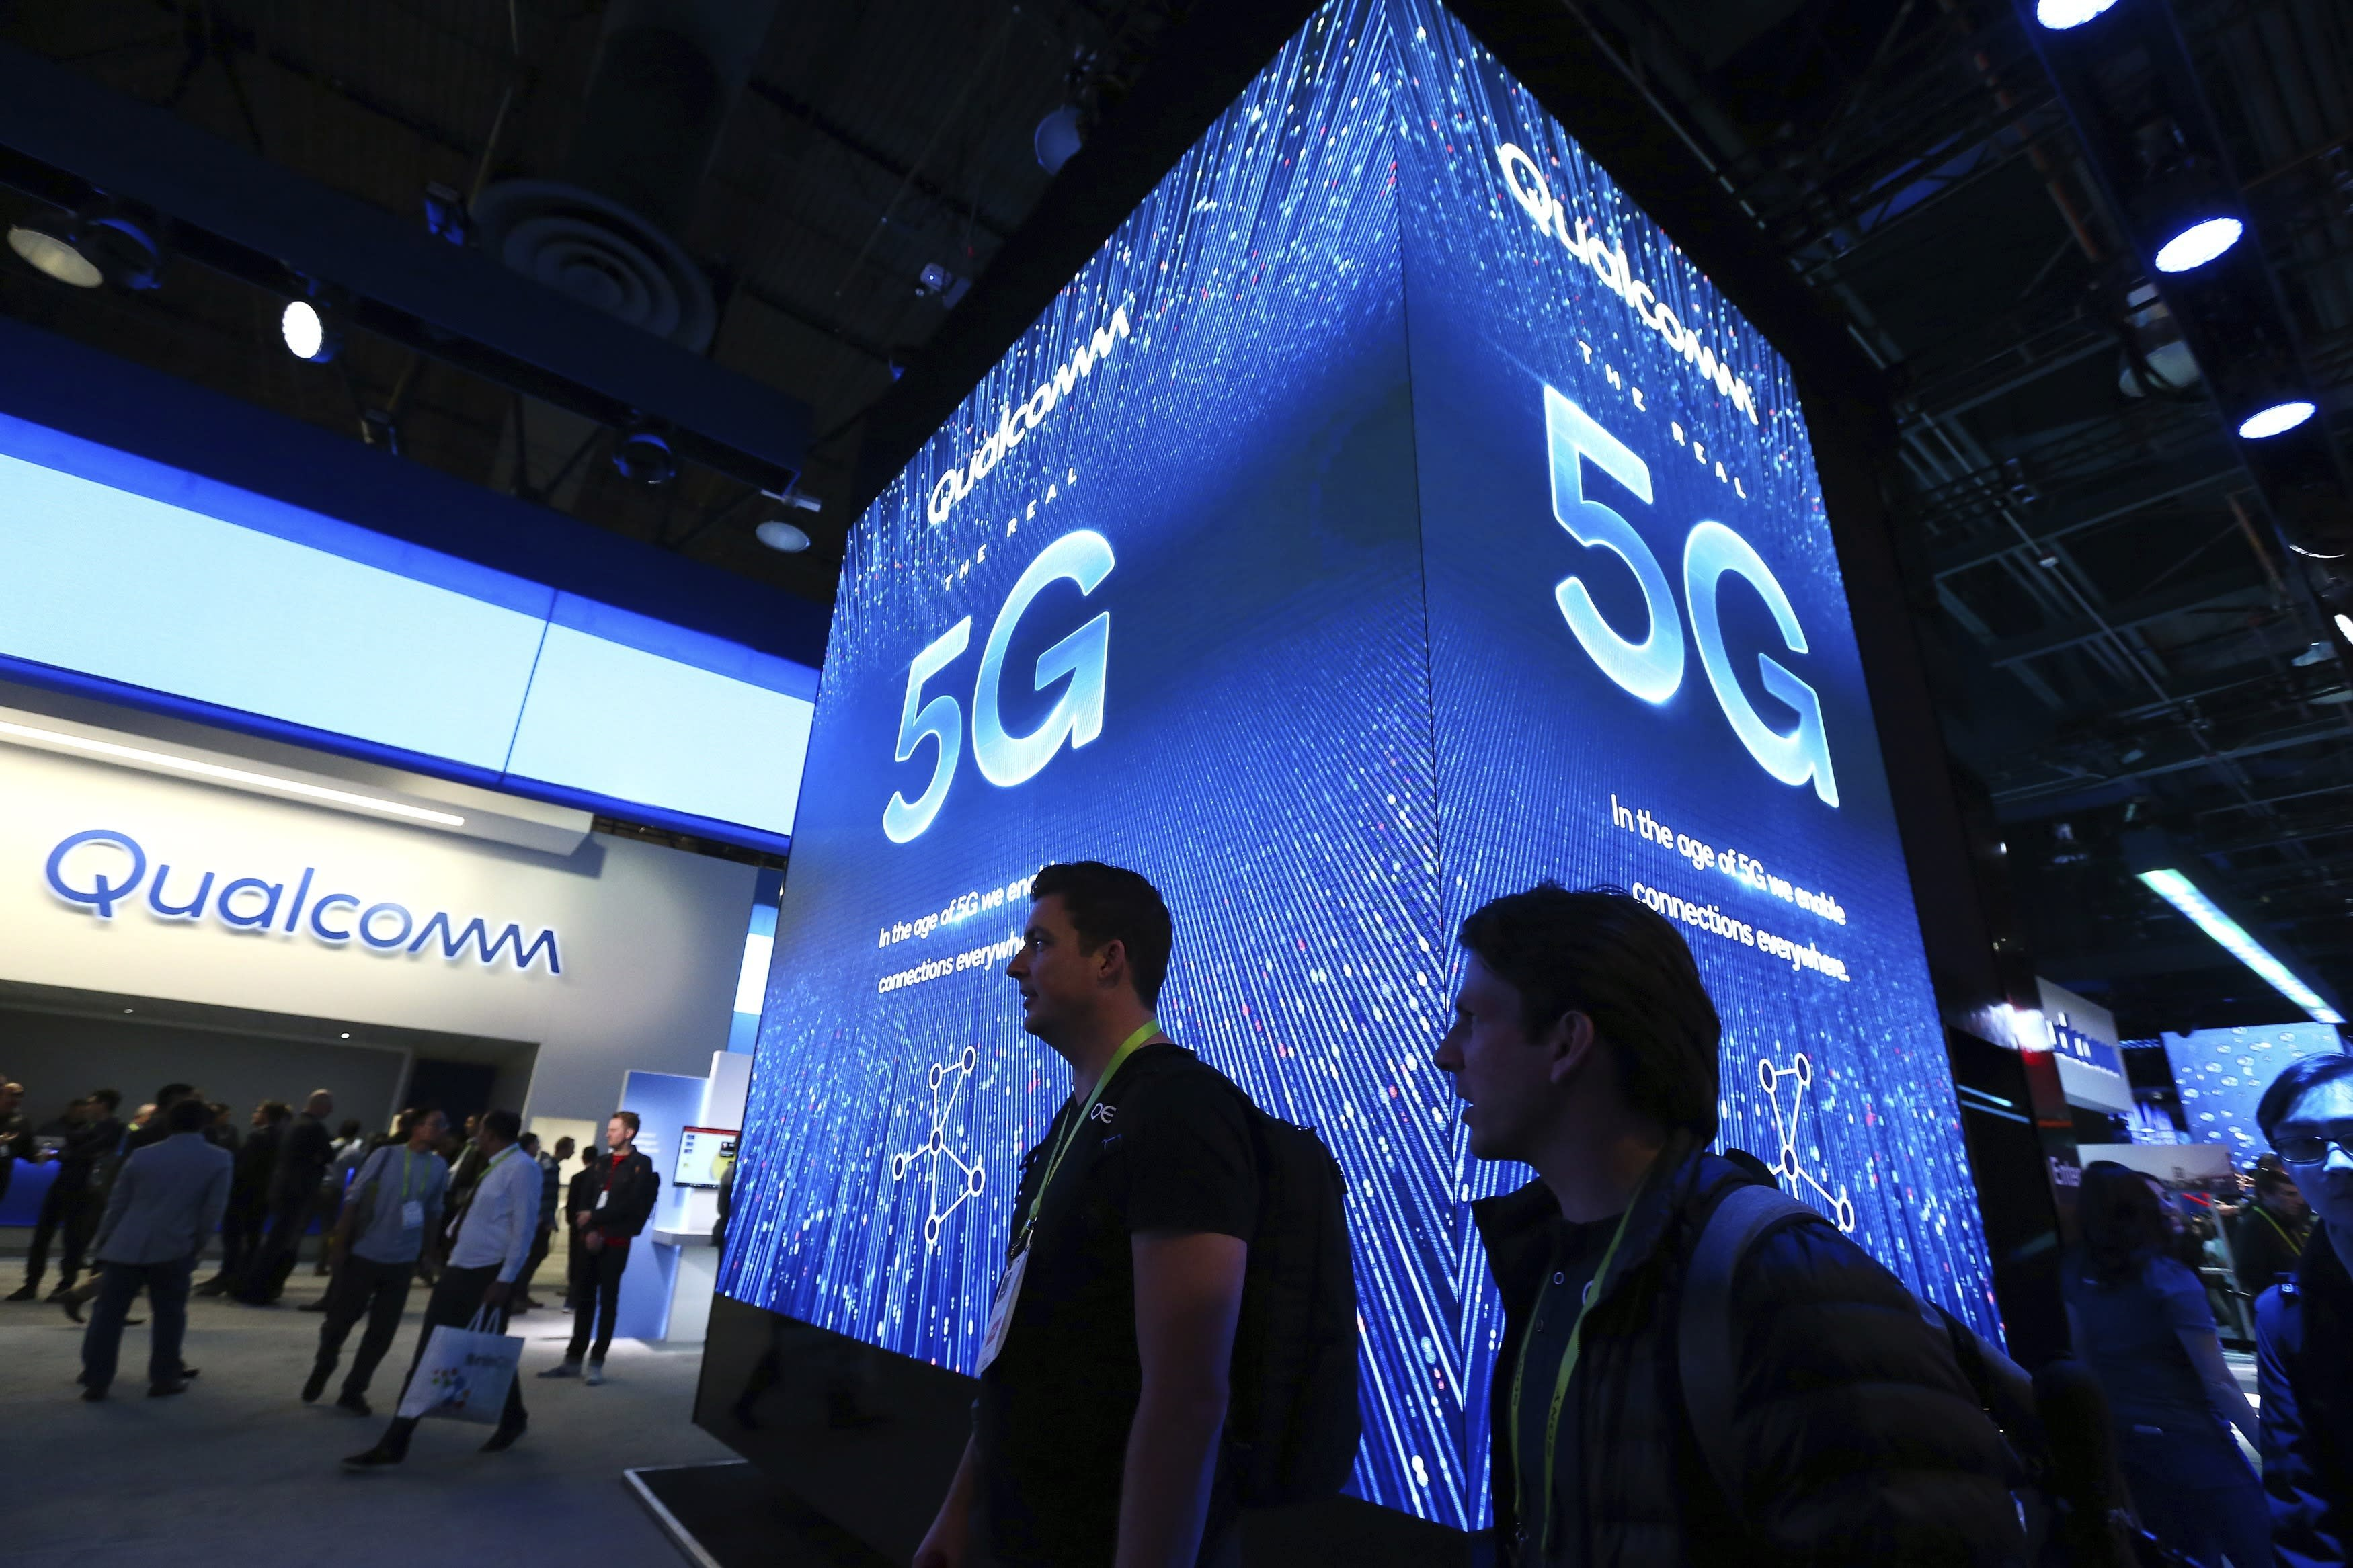 Qualcomm President: By 2020 'all major carriers will have 5G'